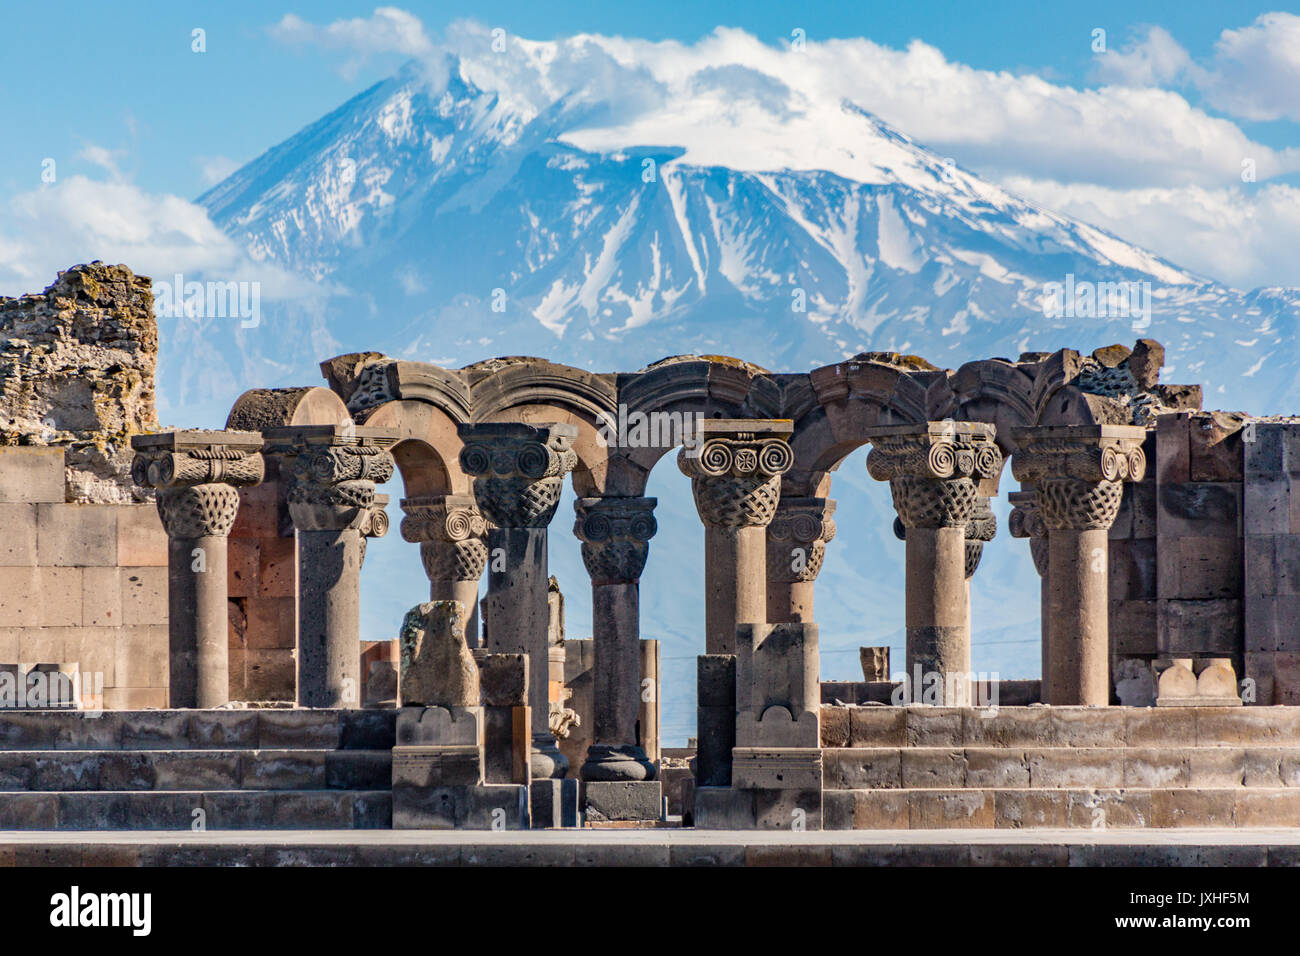 Ruins of the Zvartnos temple in Yerevan, Armenia, with Mt Ararat in the background - Stock Image